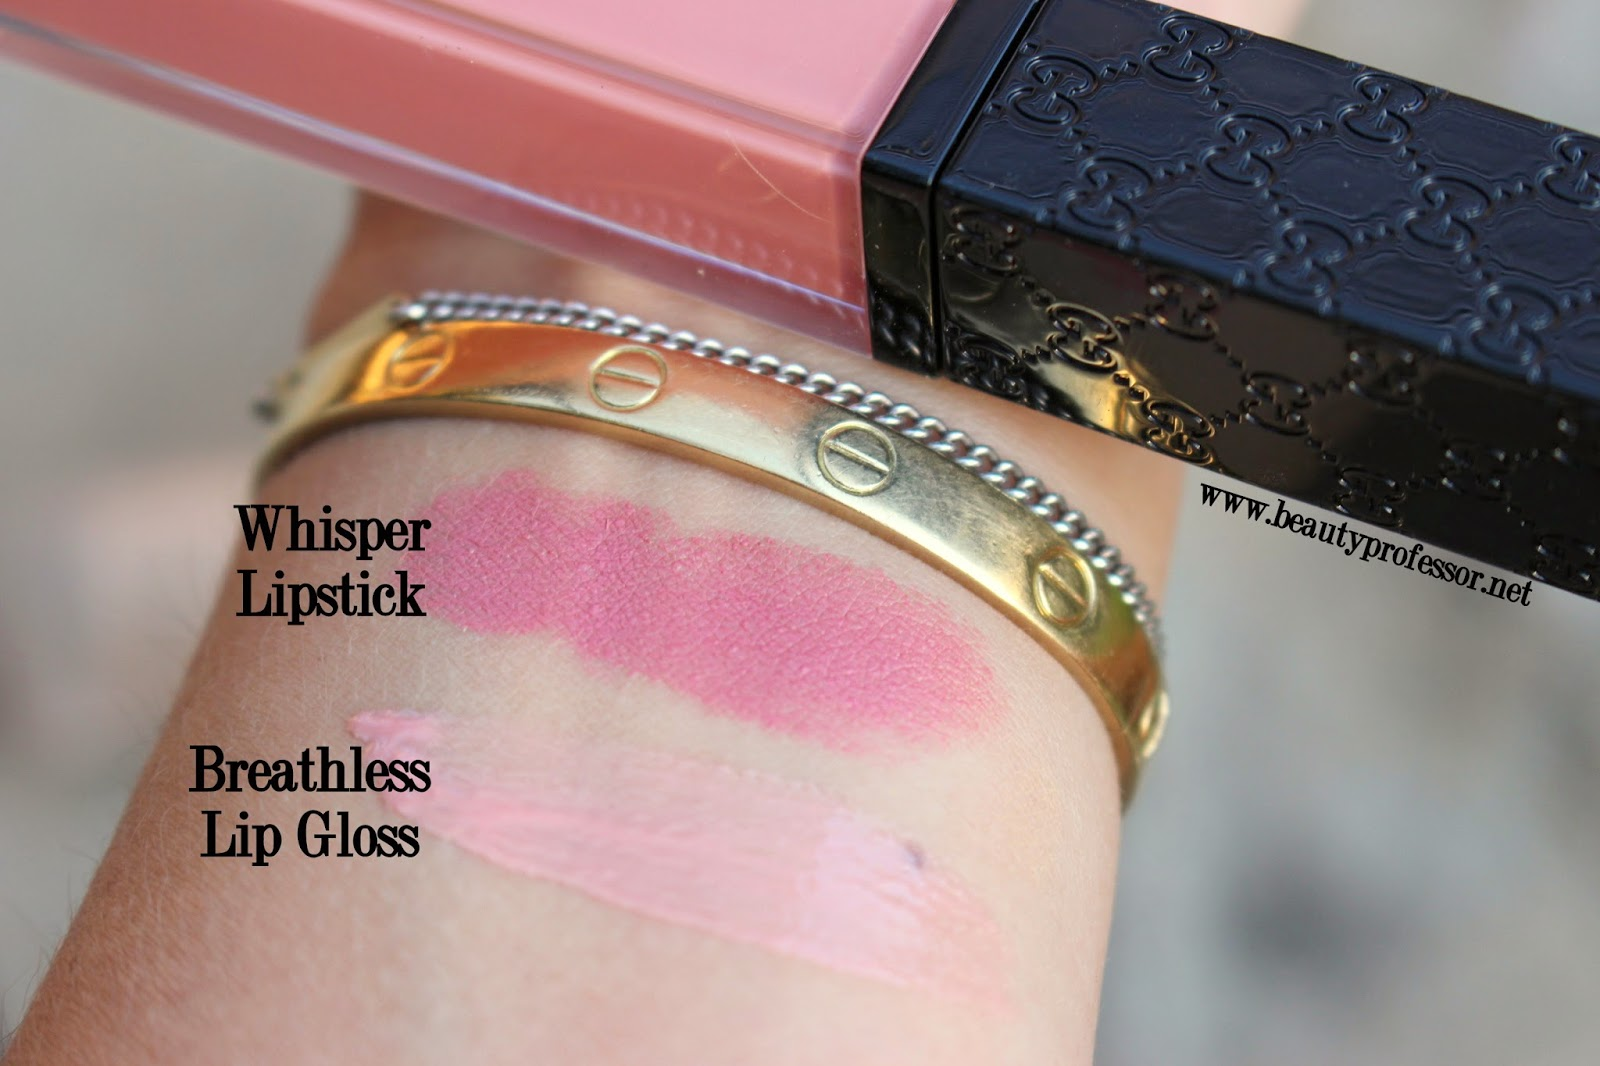 gucci lip gloss swatches breathless